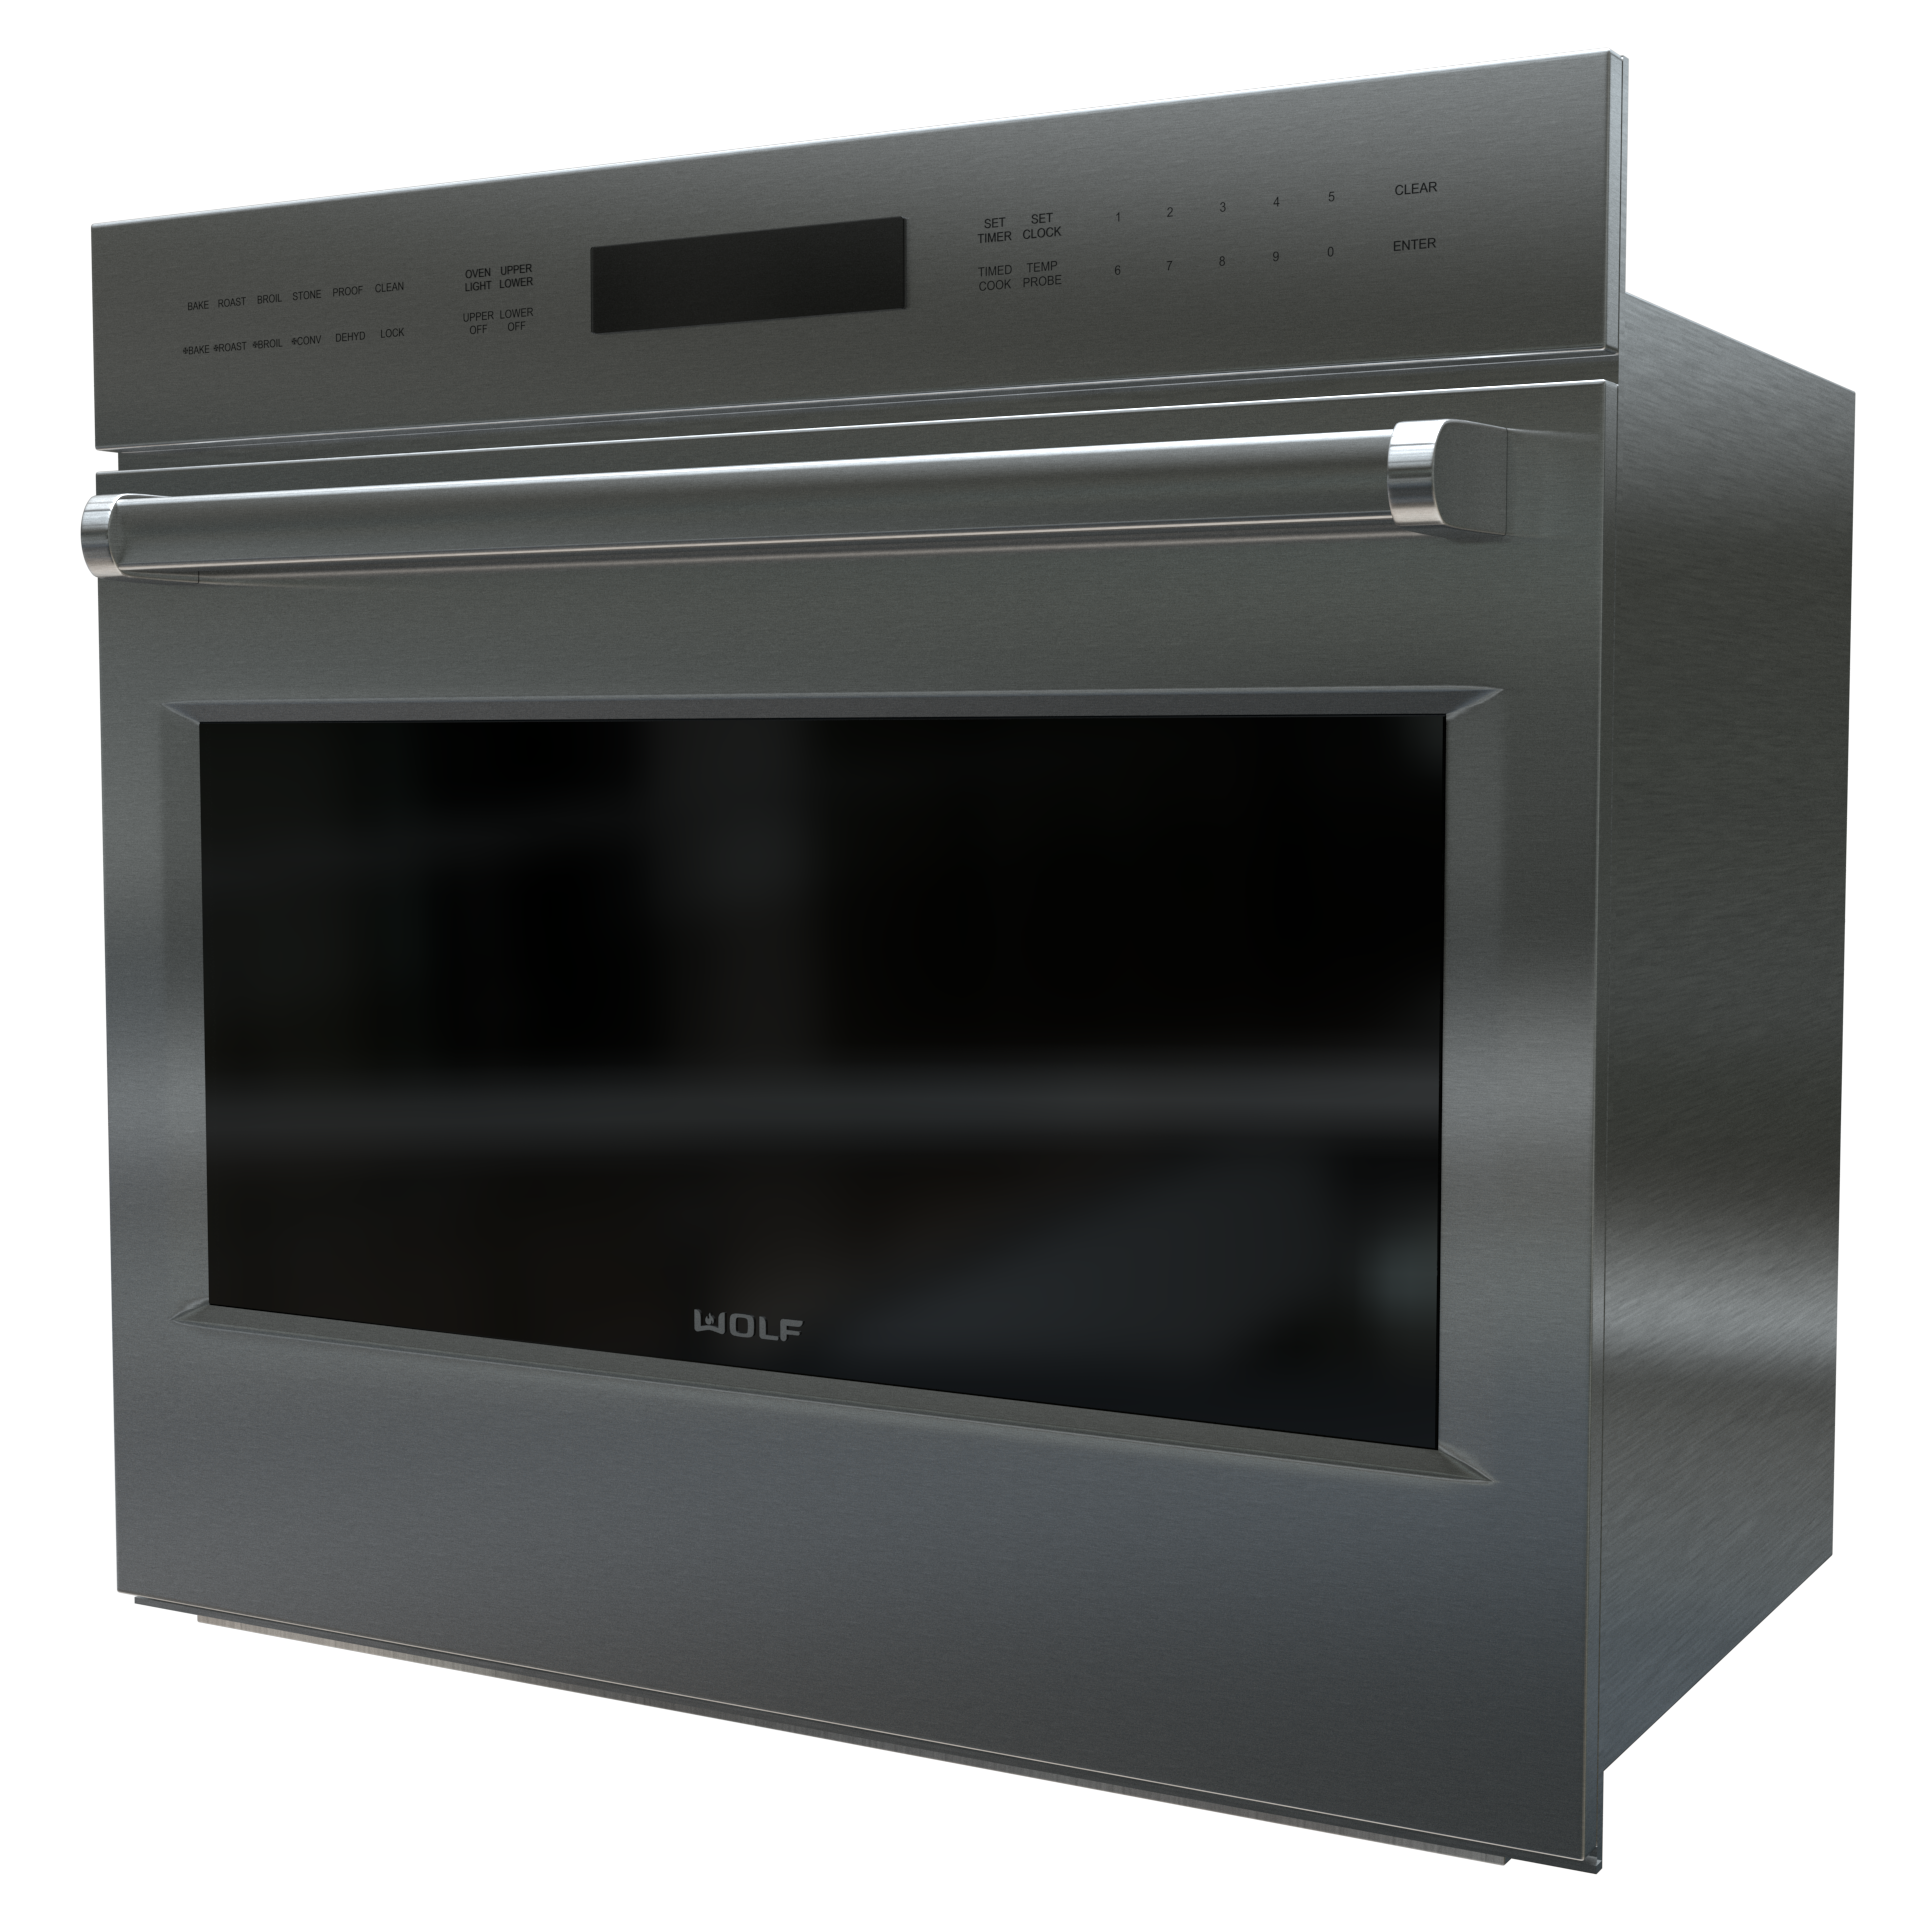 Oven AI 01 Preview.png